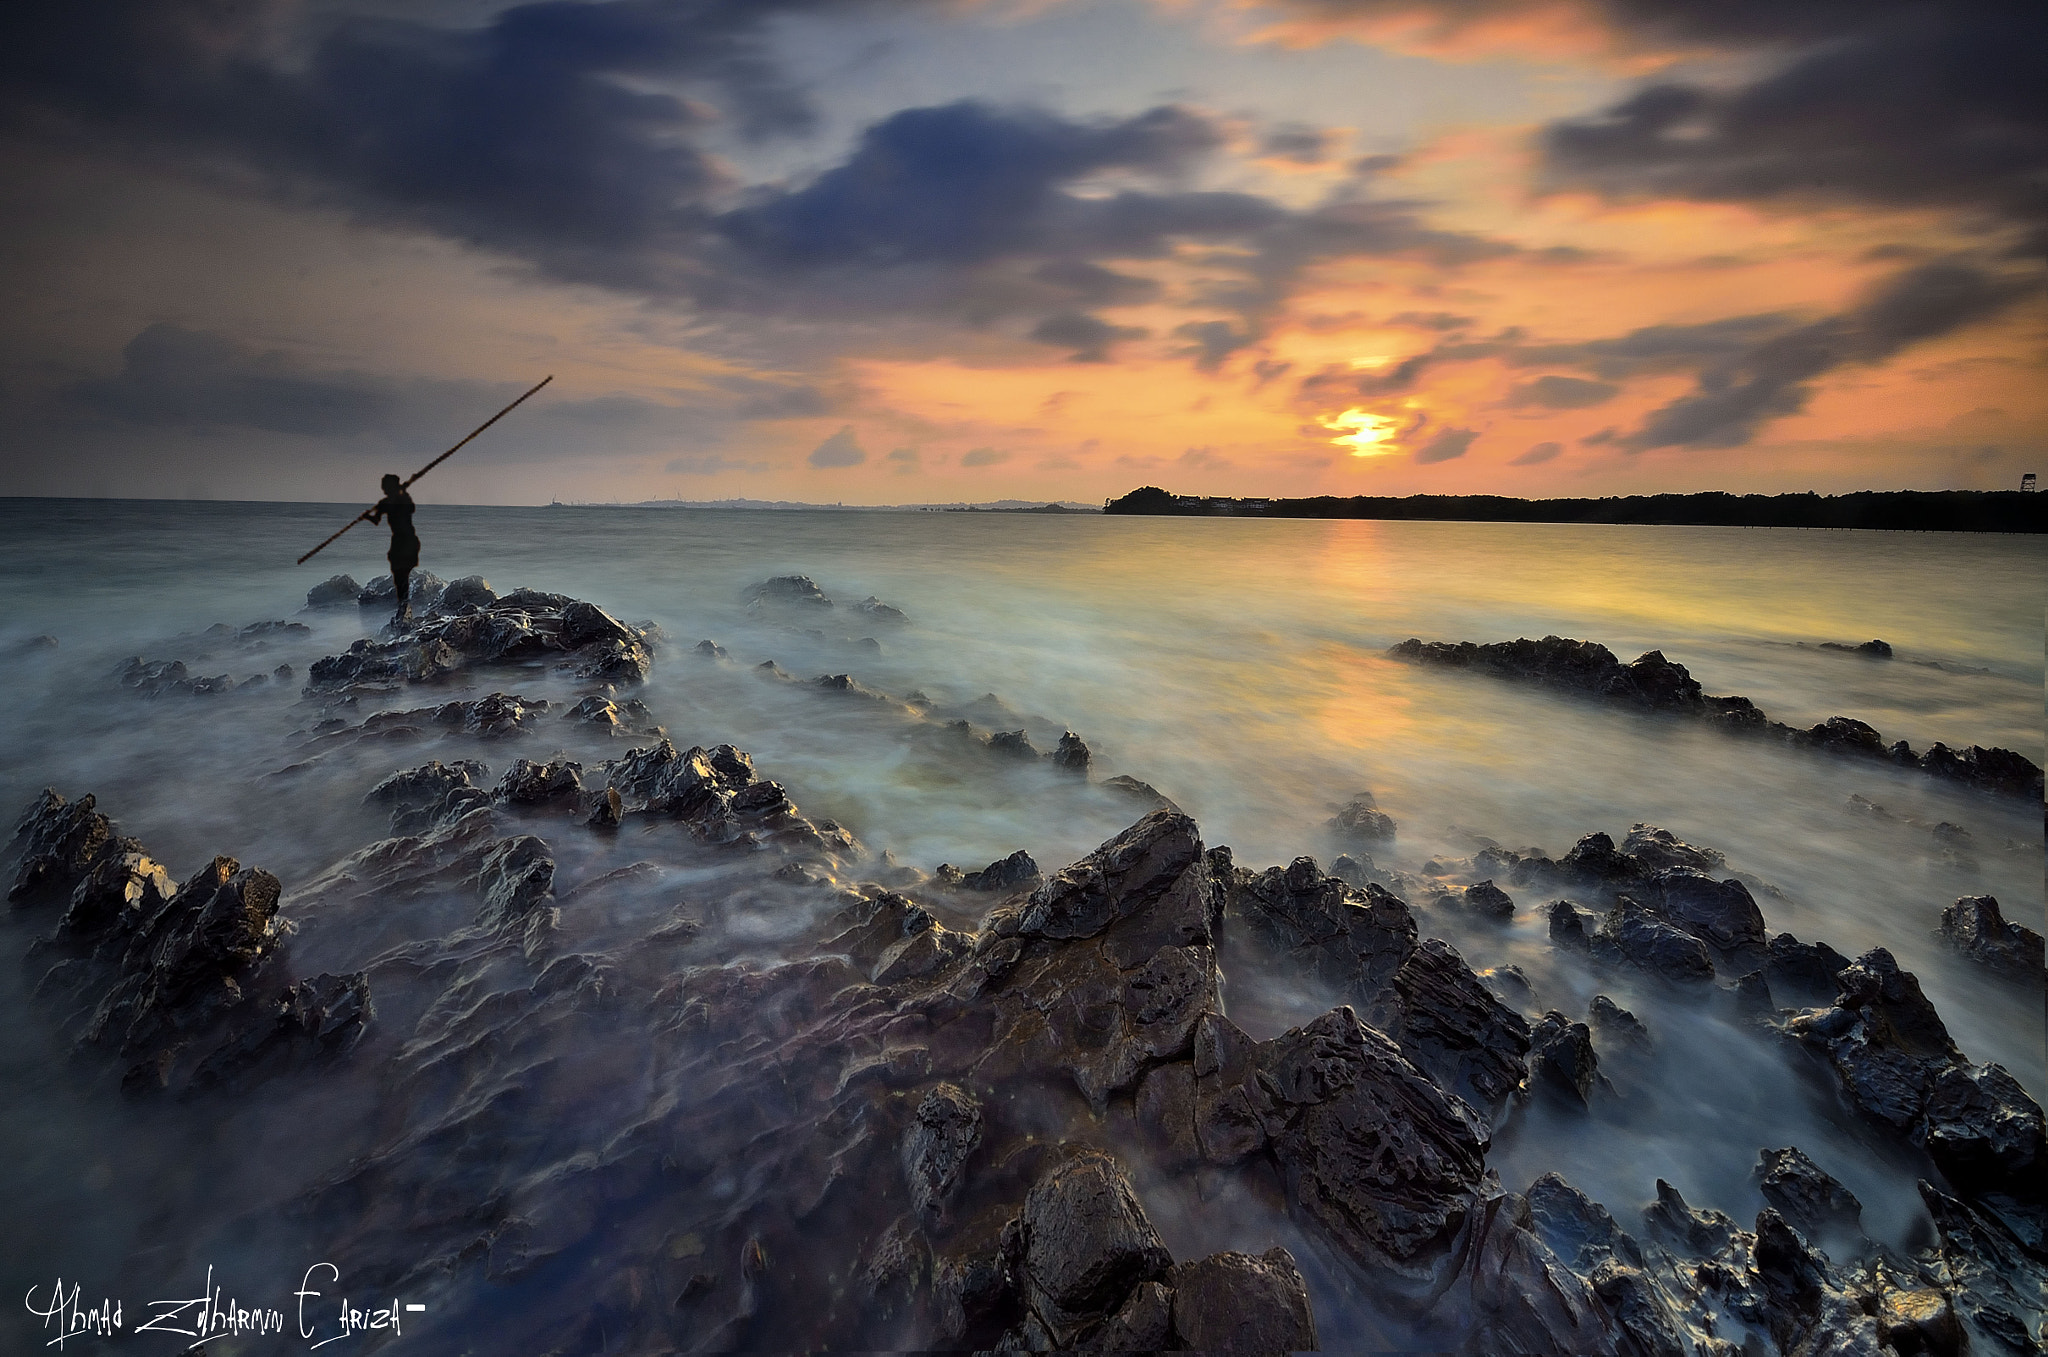 Photograph ::. Traditional Fisherman .:: by Ahmad Zulharmin Fariza on 500px